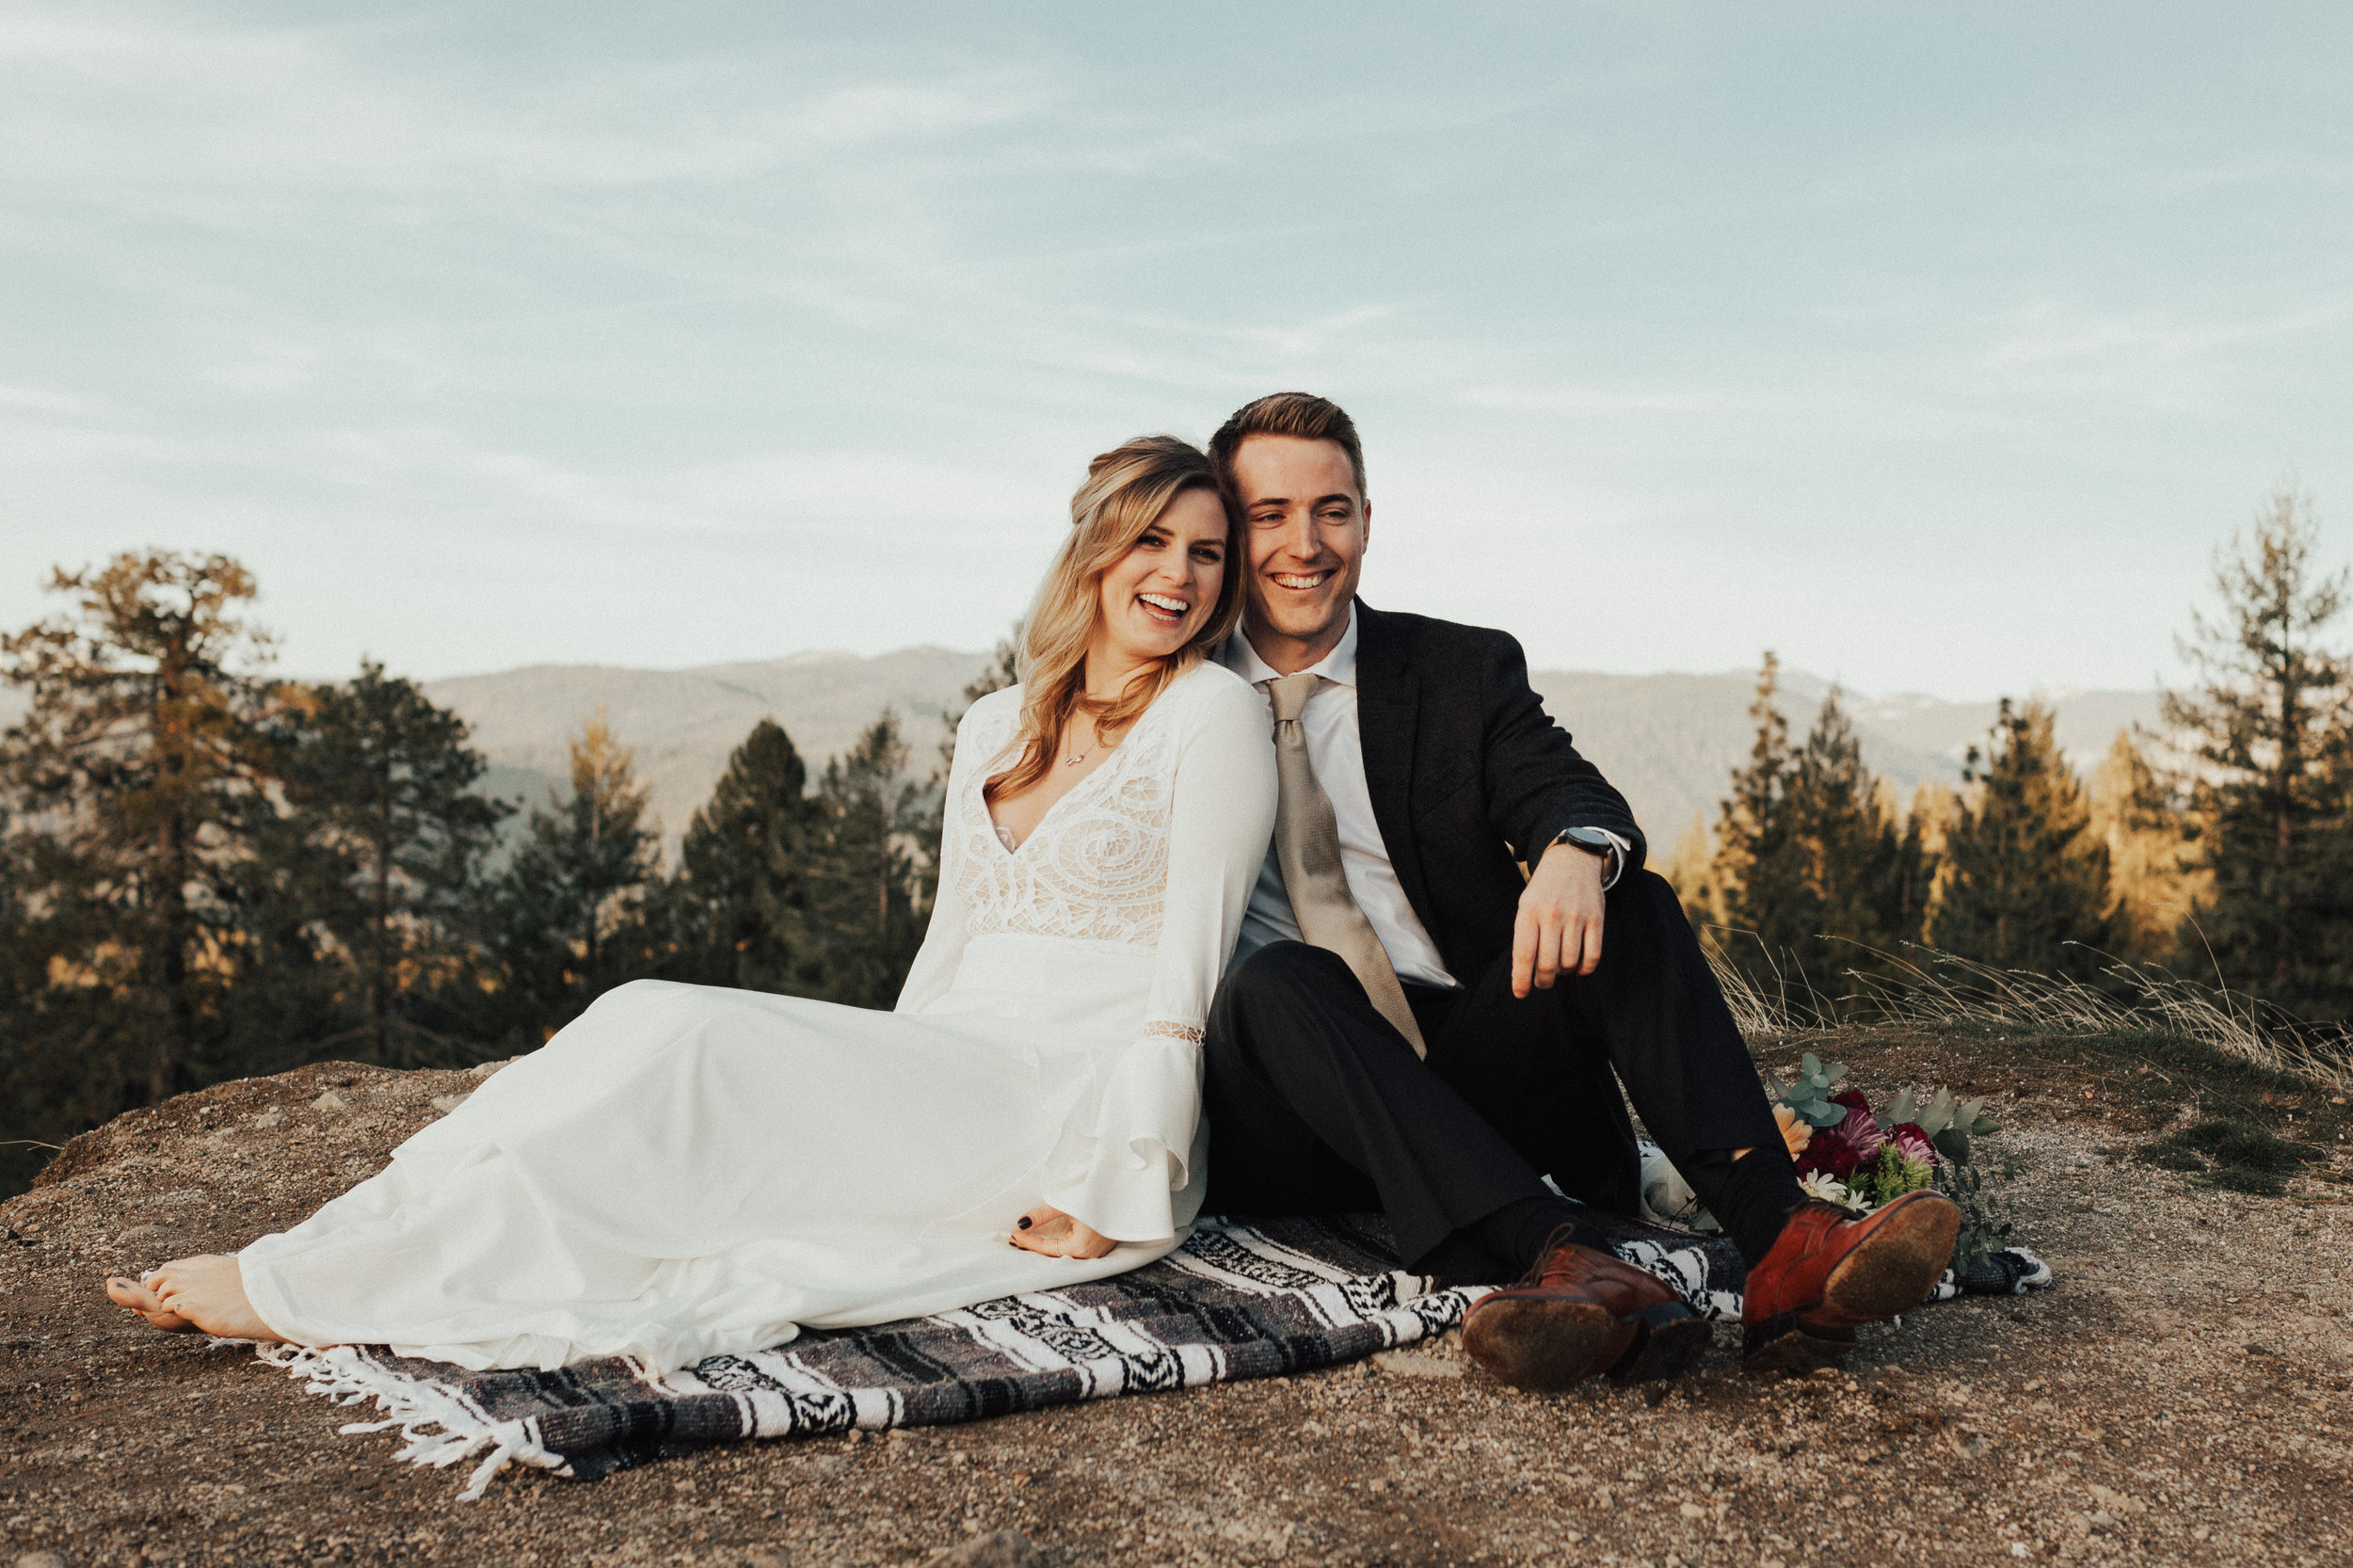 Bride and groom sitting snuggled up on a blanket after just getting married on the cliff side in nevada city, california.